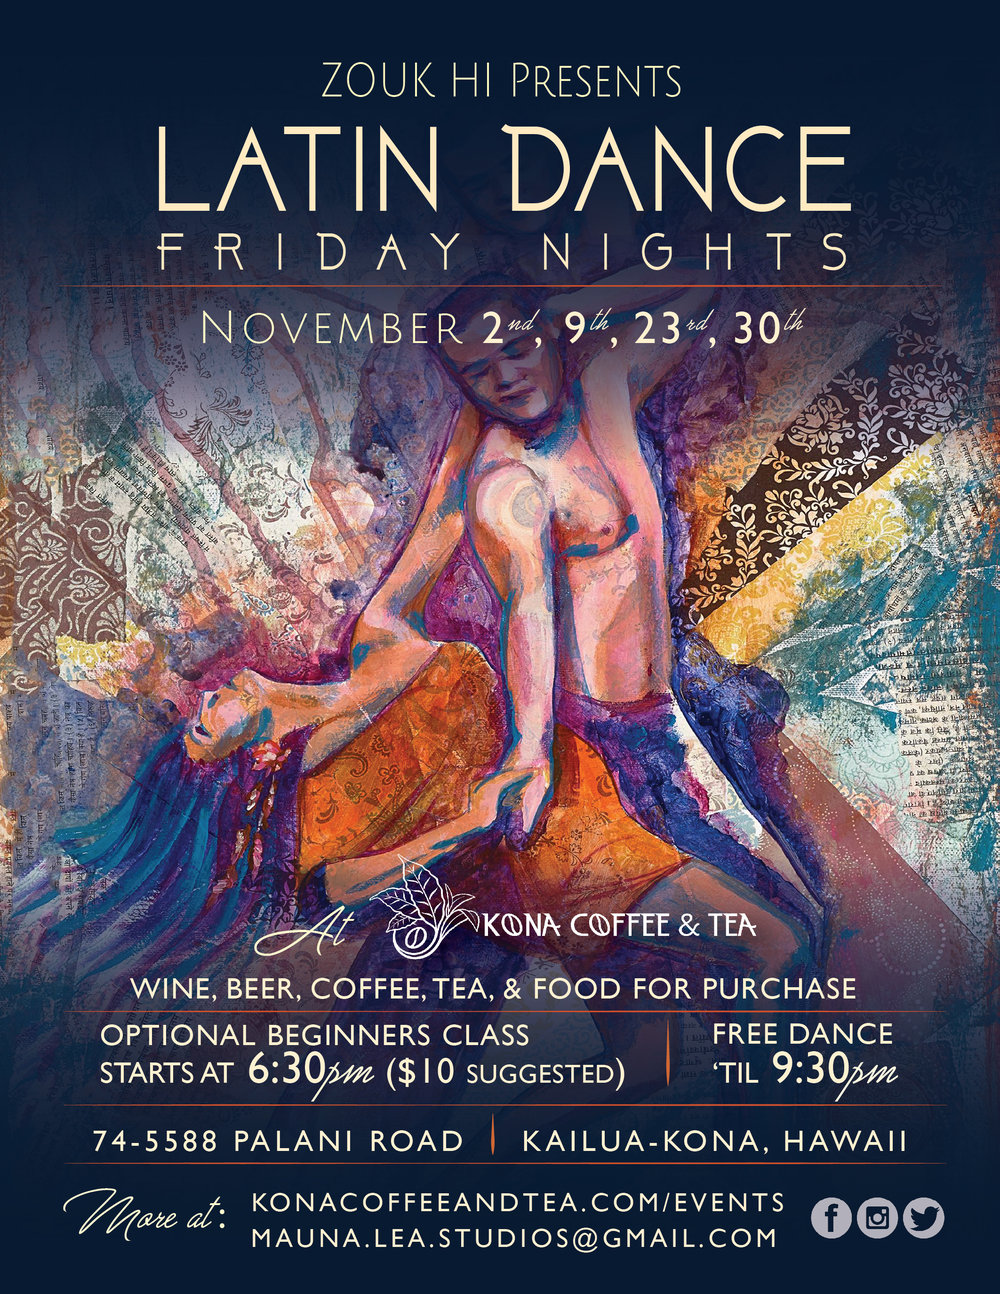 Latin Dance Friday Nights November 2018_Kona Coffee and Tea-01-01.jpg